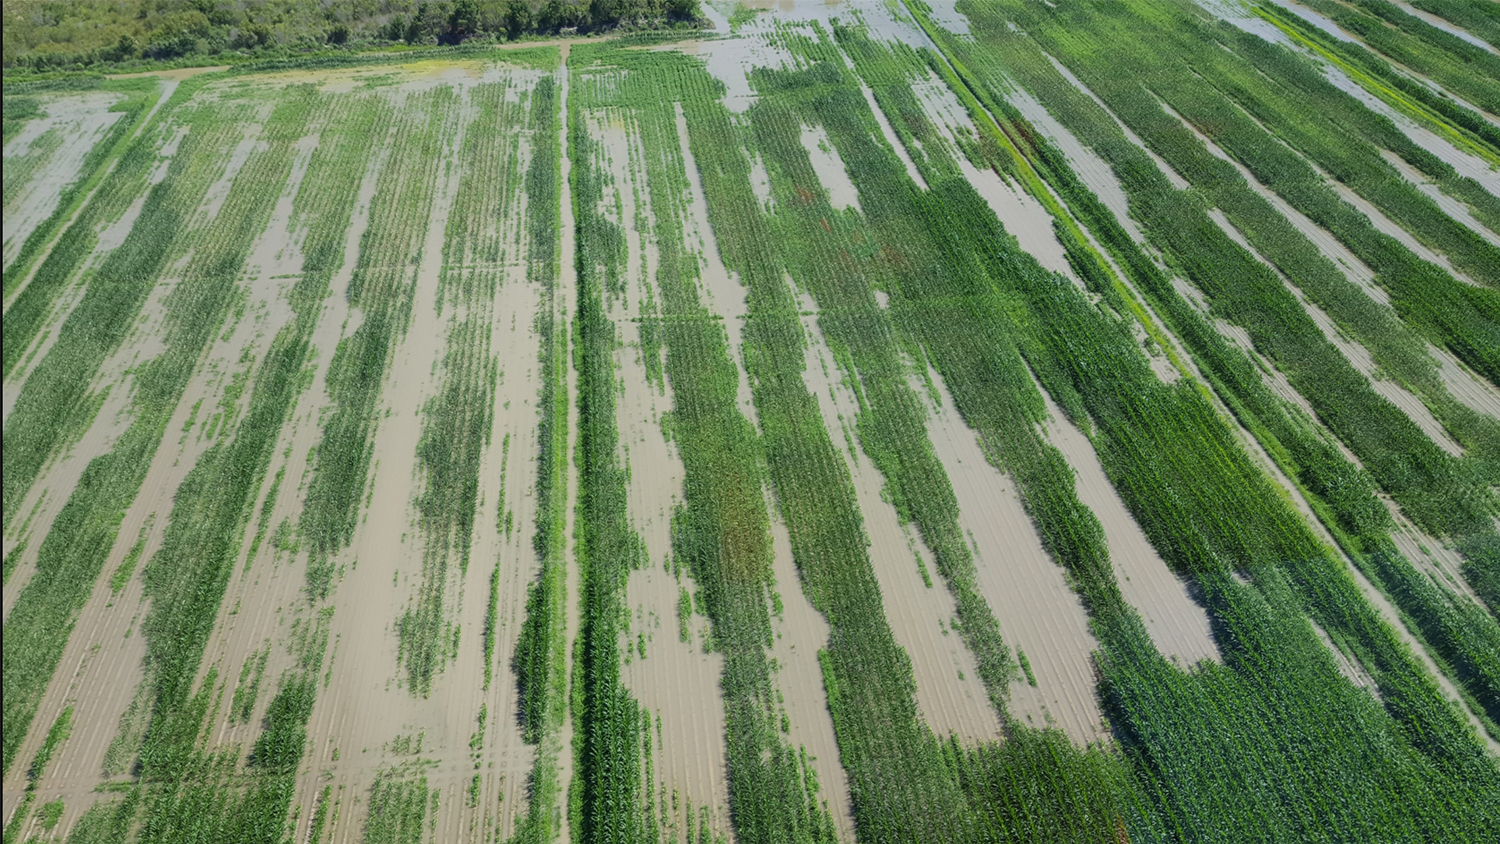 aerial view of a flooded corn field